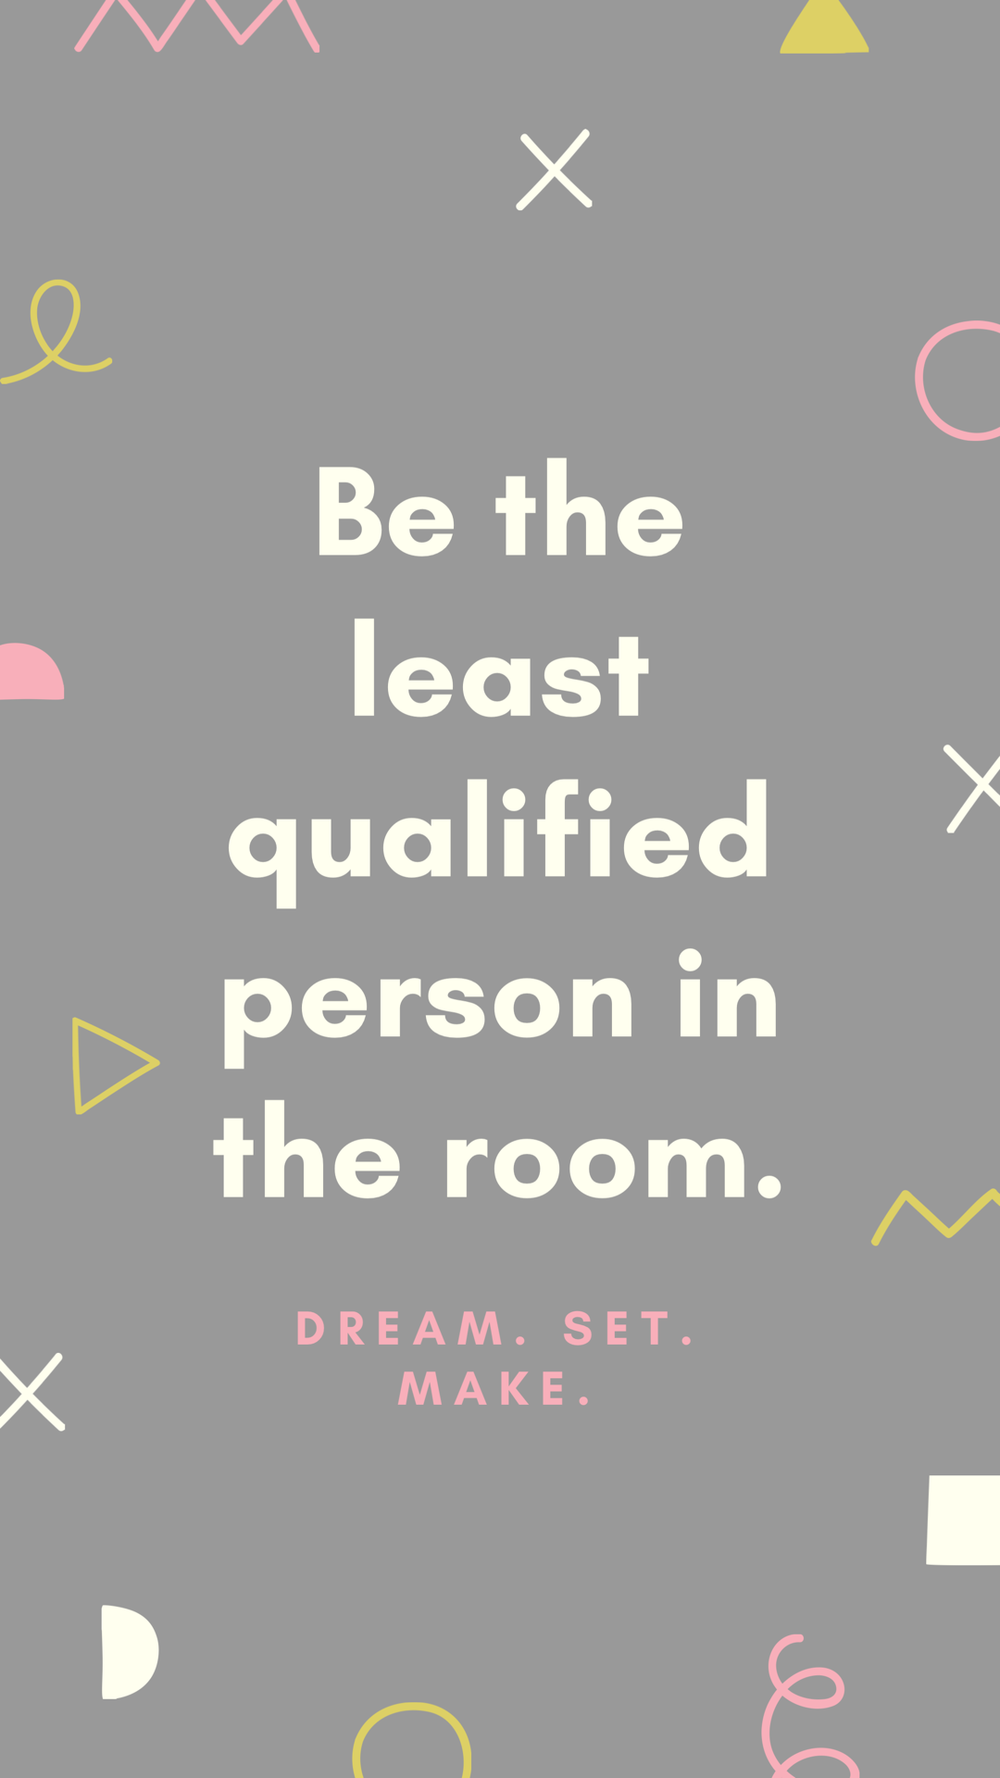 Be the least qualified.